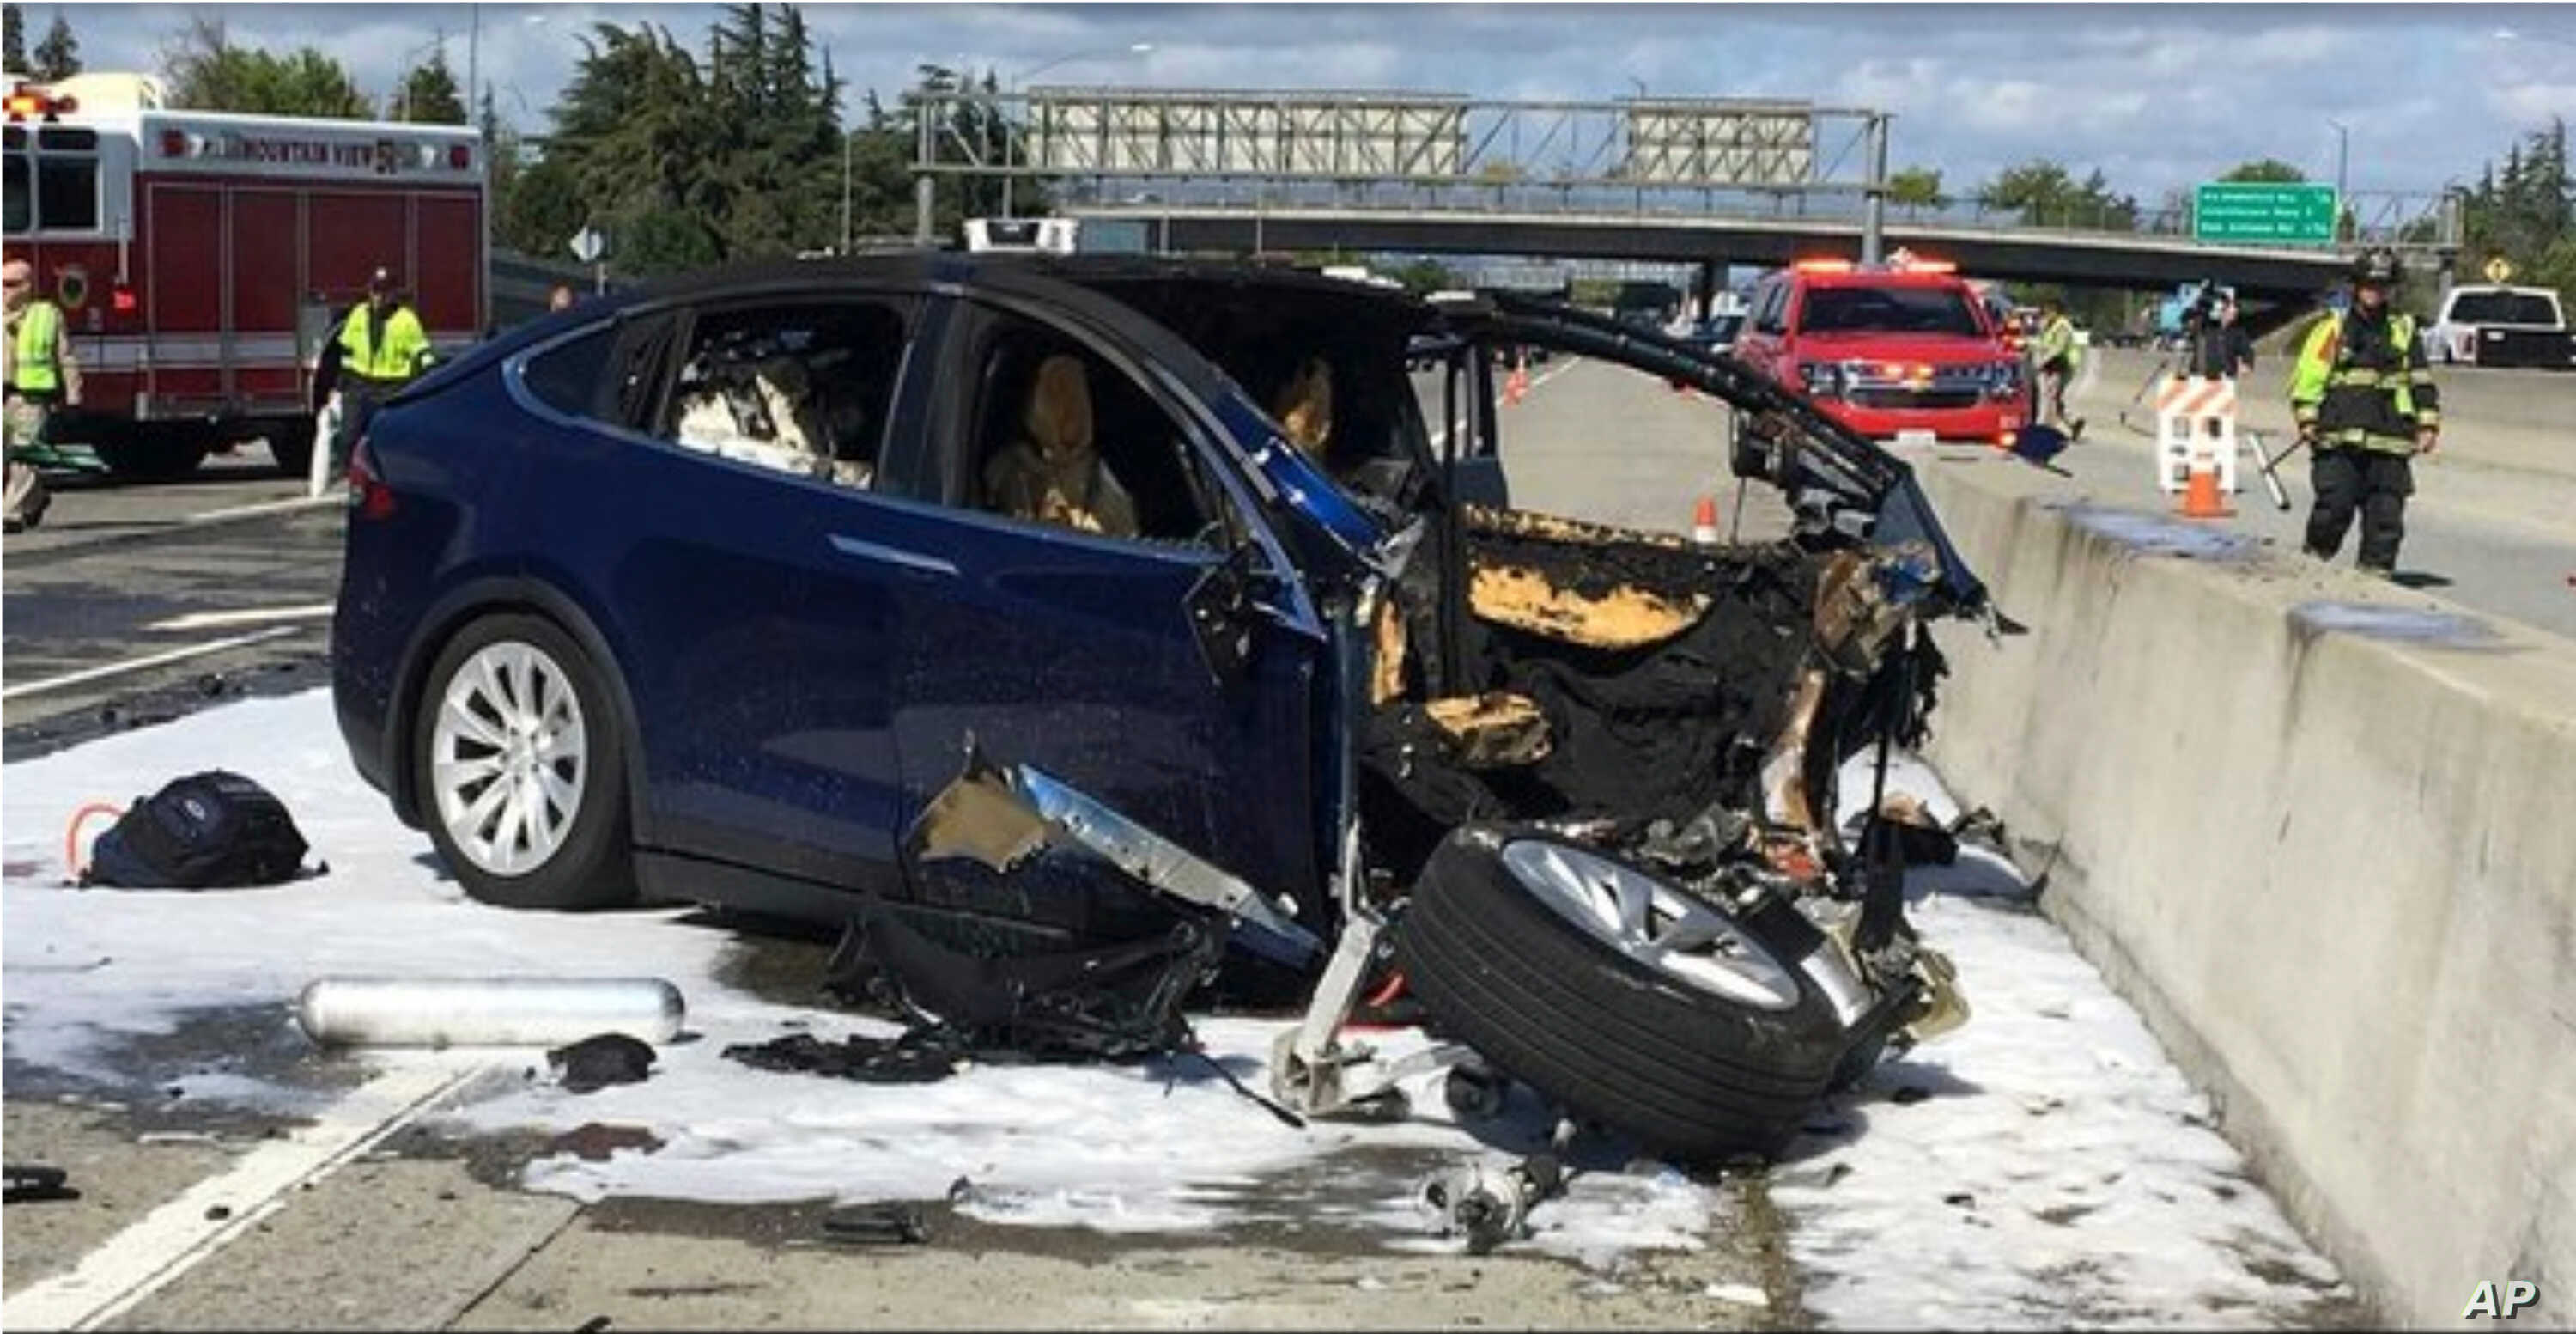 Tesla Says Vehicle in Deadly Crash Was on Autopilot | Voice of